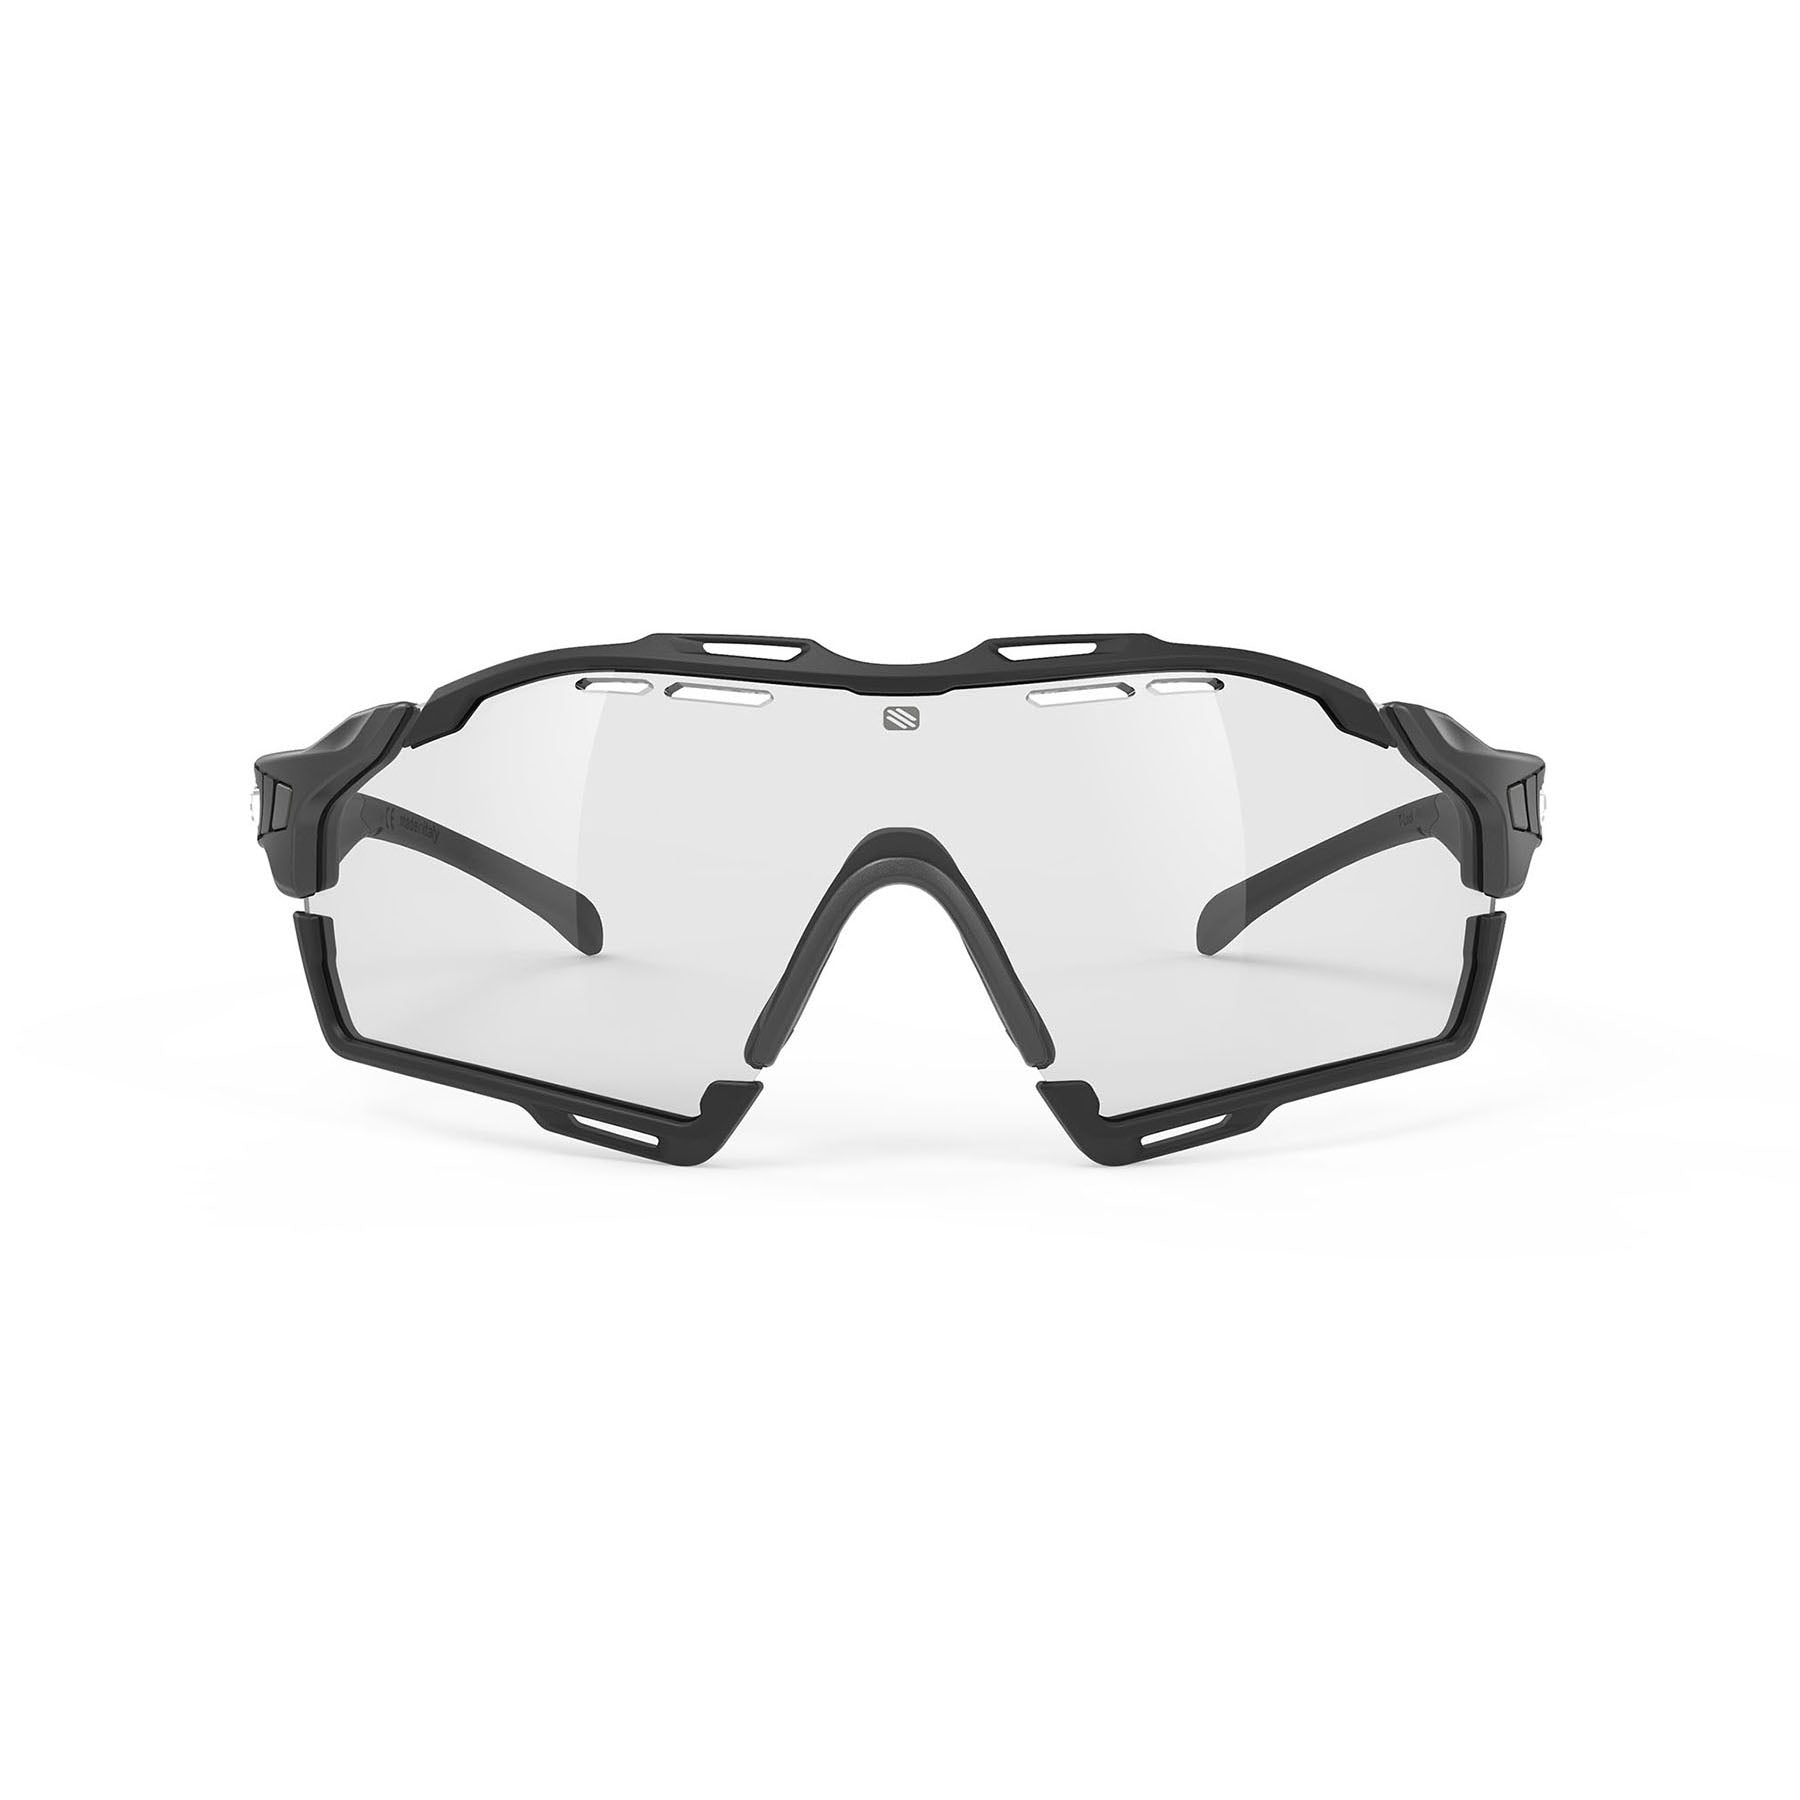 Rudy Project - Cutline - frame color: Graphine Matte - lens color: ImpactX-2 Photochromic Clear to Black - Bumper Color: Black - photo angle: Front View Variant Hover Image